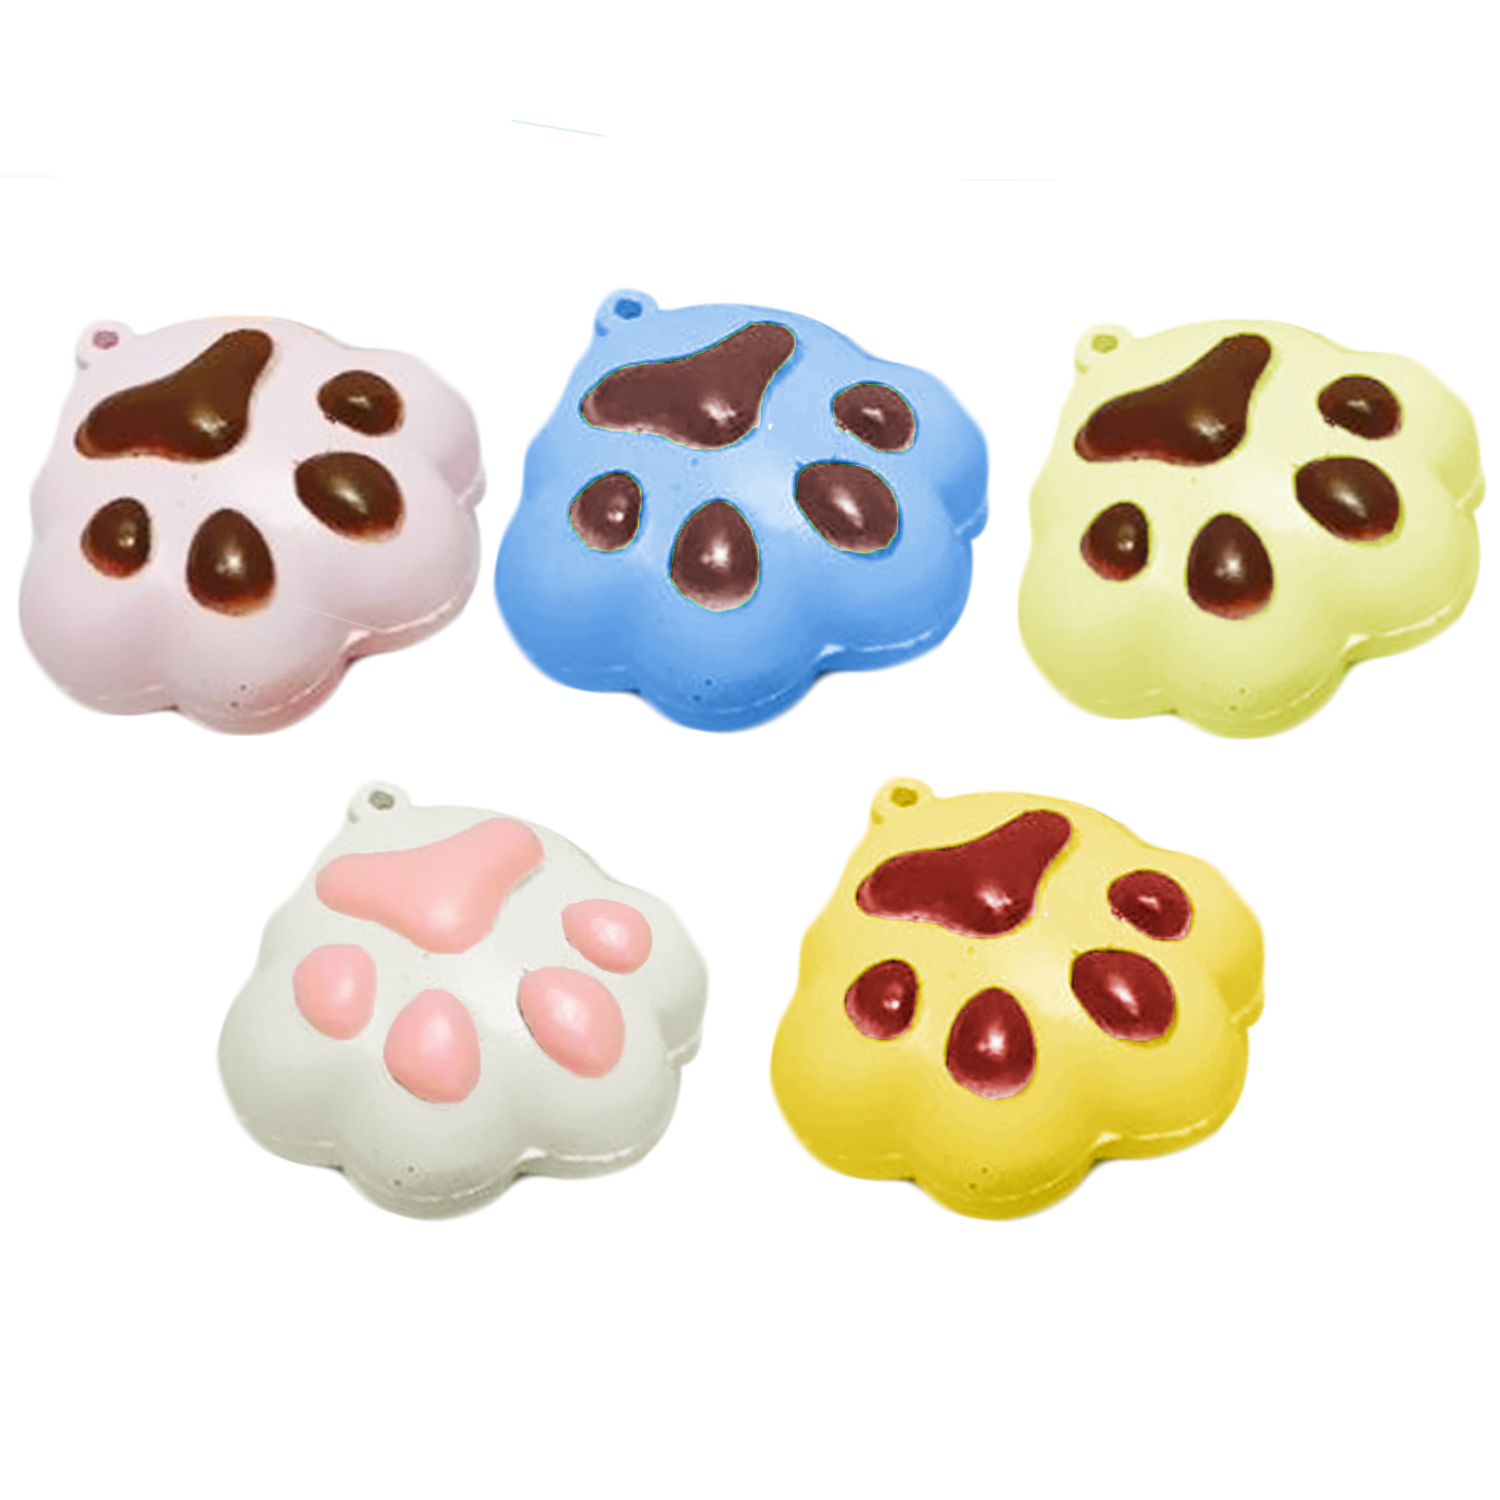 Satkago 12 PCS Soft Squishy Imitation Cat Sprinkle Feet Dog Paw Bear Footprint Cookie Pendant Slow Rising Toy for Relieve Stress